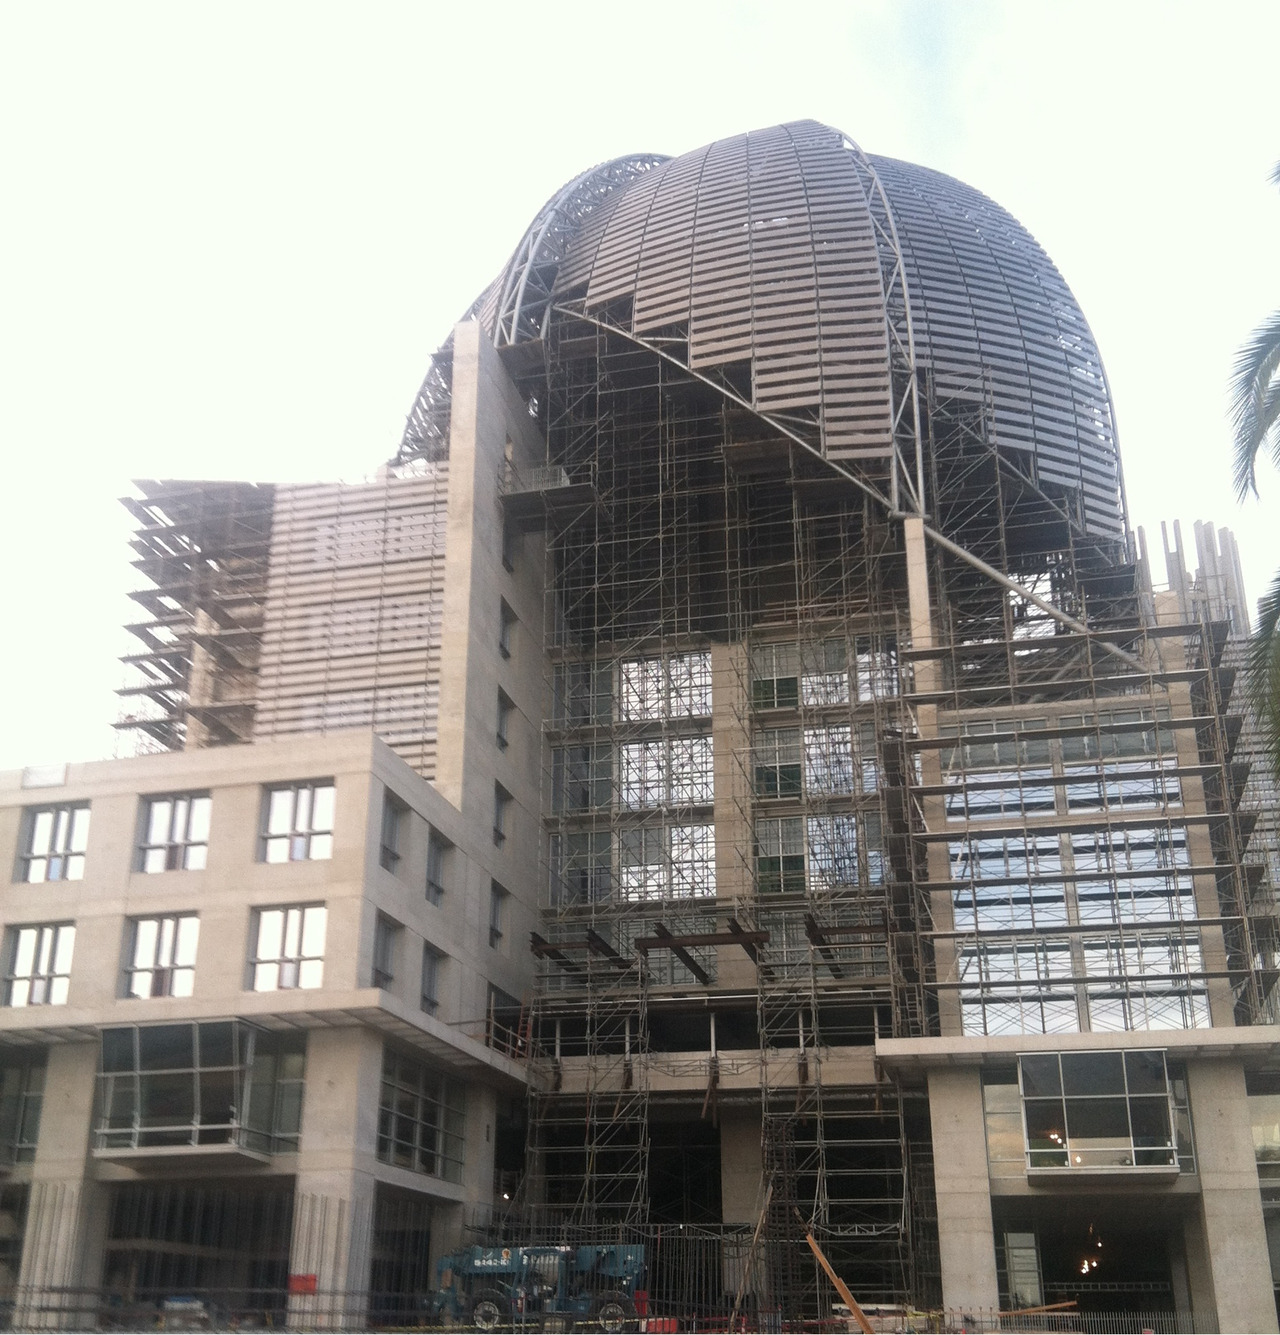 Central library. San Diego, CA. In progress